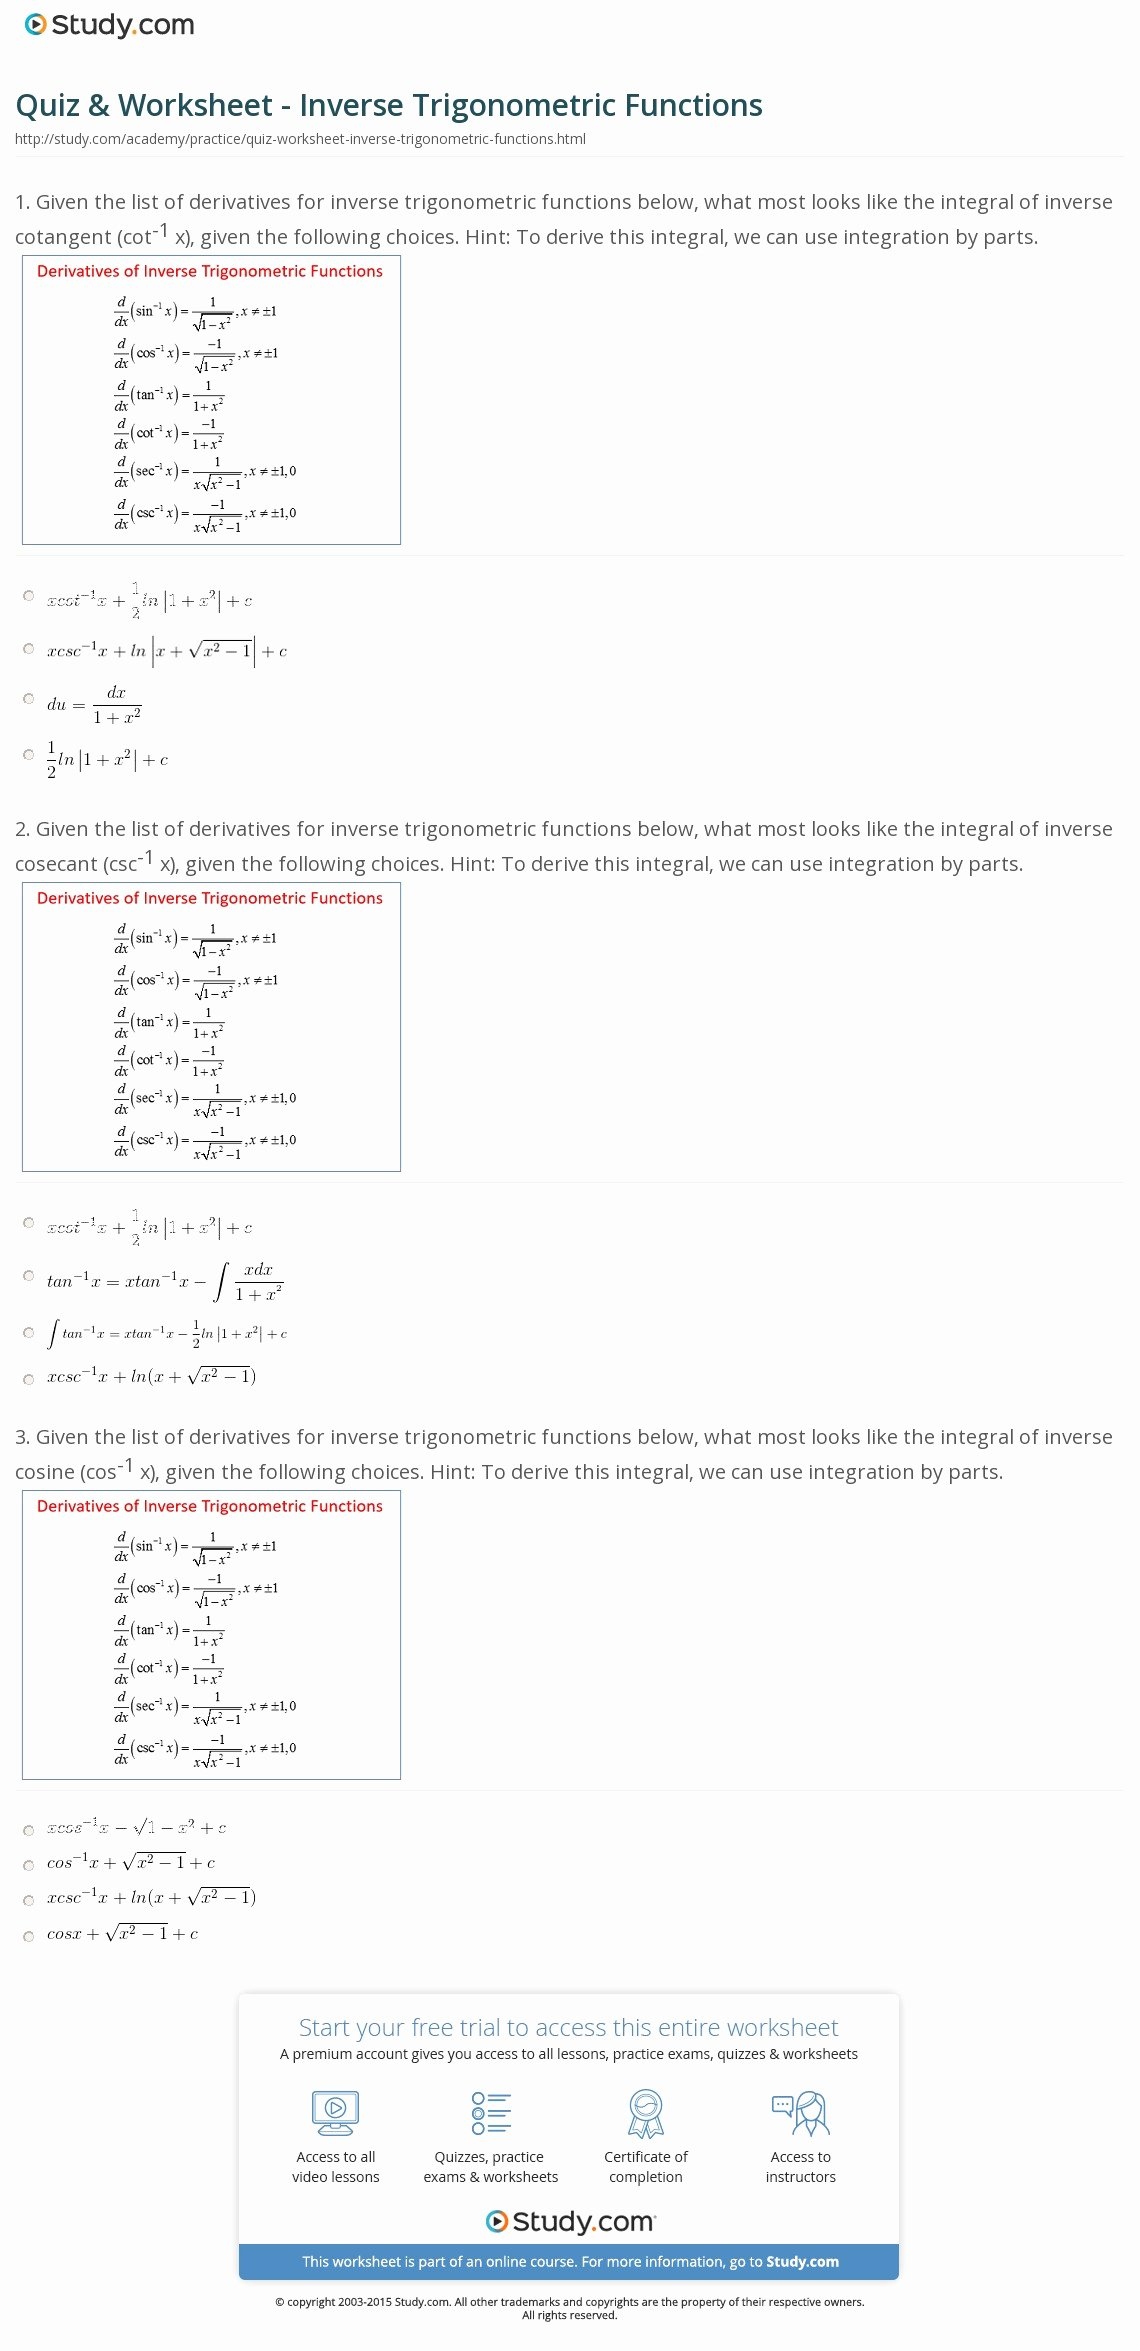 Derivative Of Trigonometric Functions Worksheet Fresh Quiz & Worksheet Inverse Trigonometric Functions